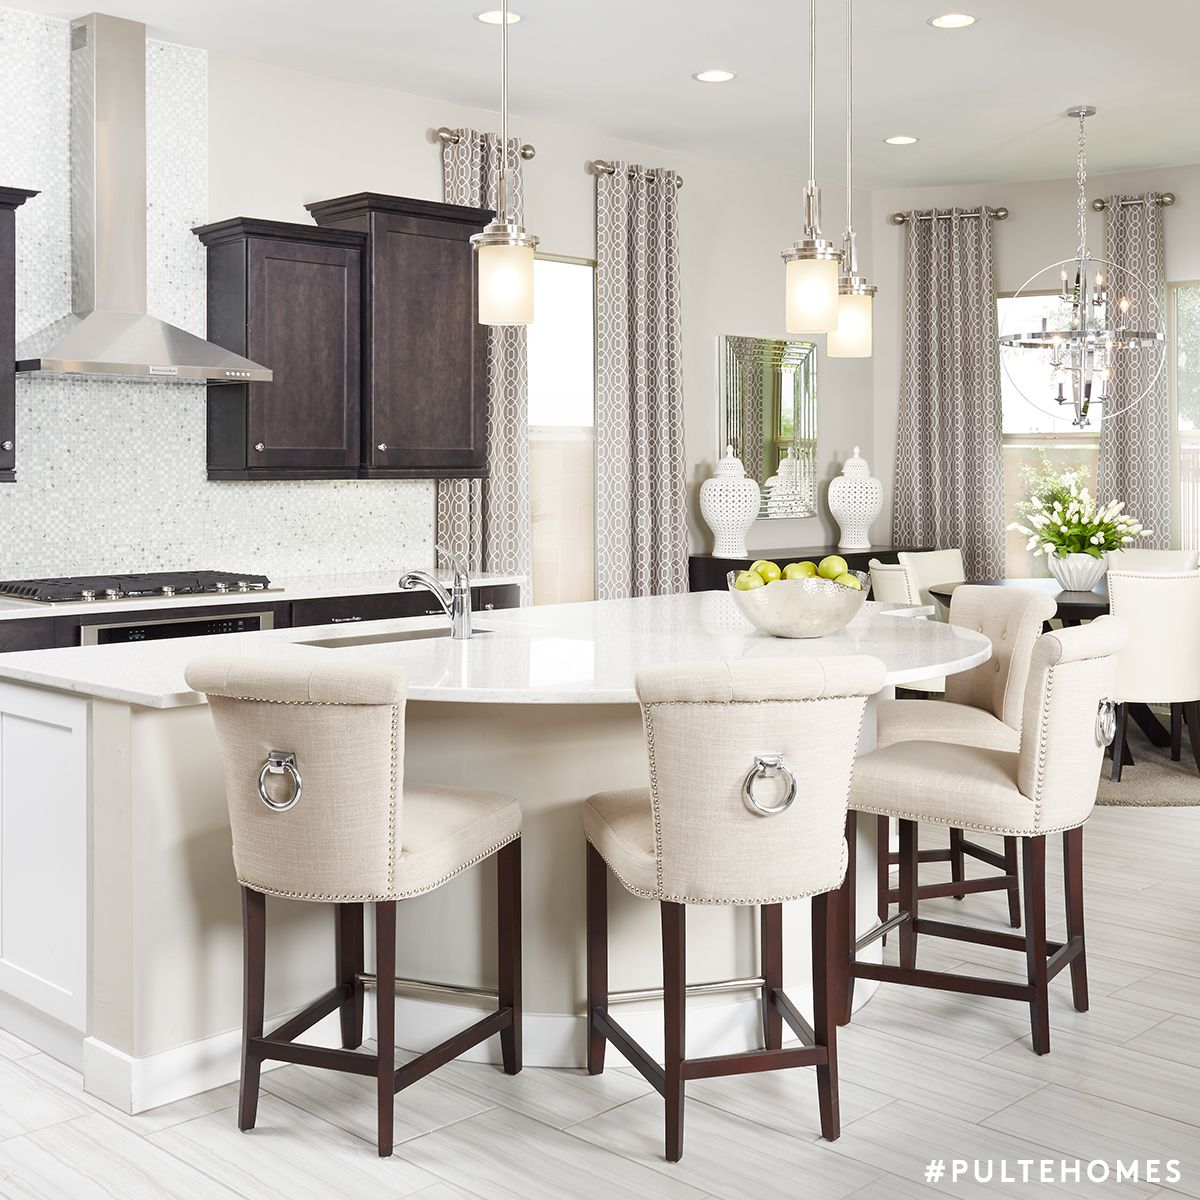 Pulte Homes (@PulteHomes)